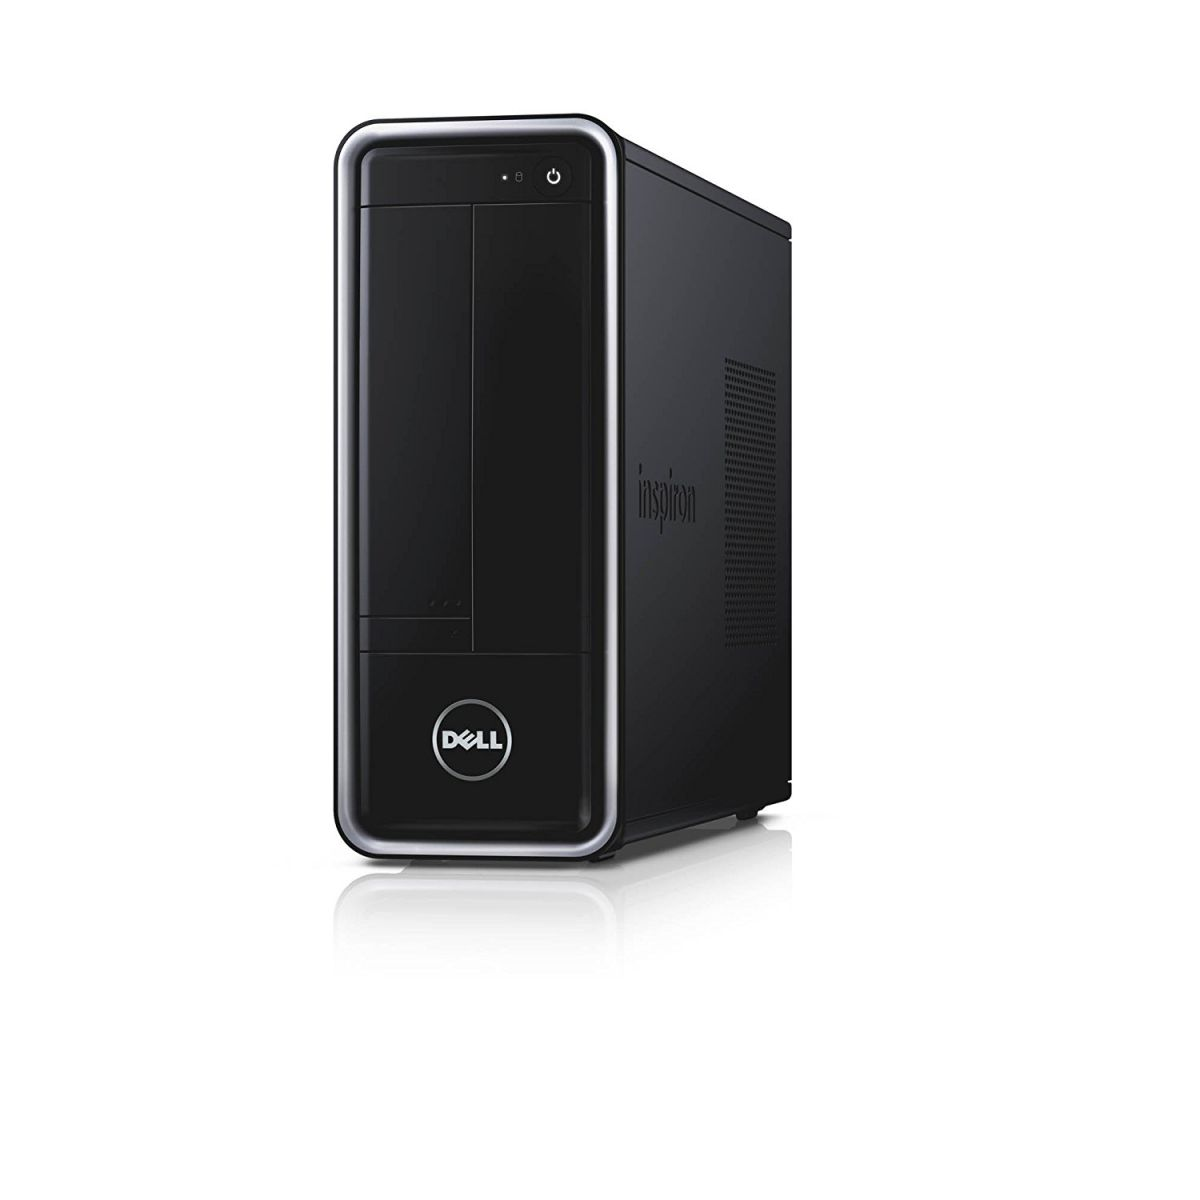 Cpu Dell Inspiron 3647 Intel G3250 /4Gb/500Gb/Dvd/Wifi/W10 Home